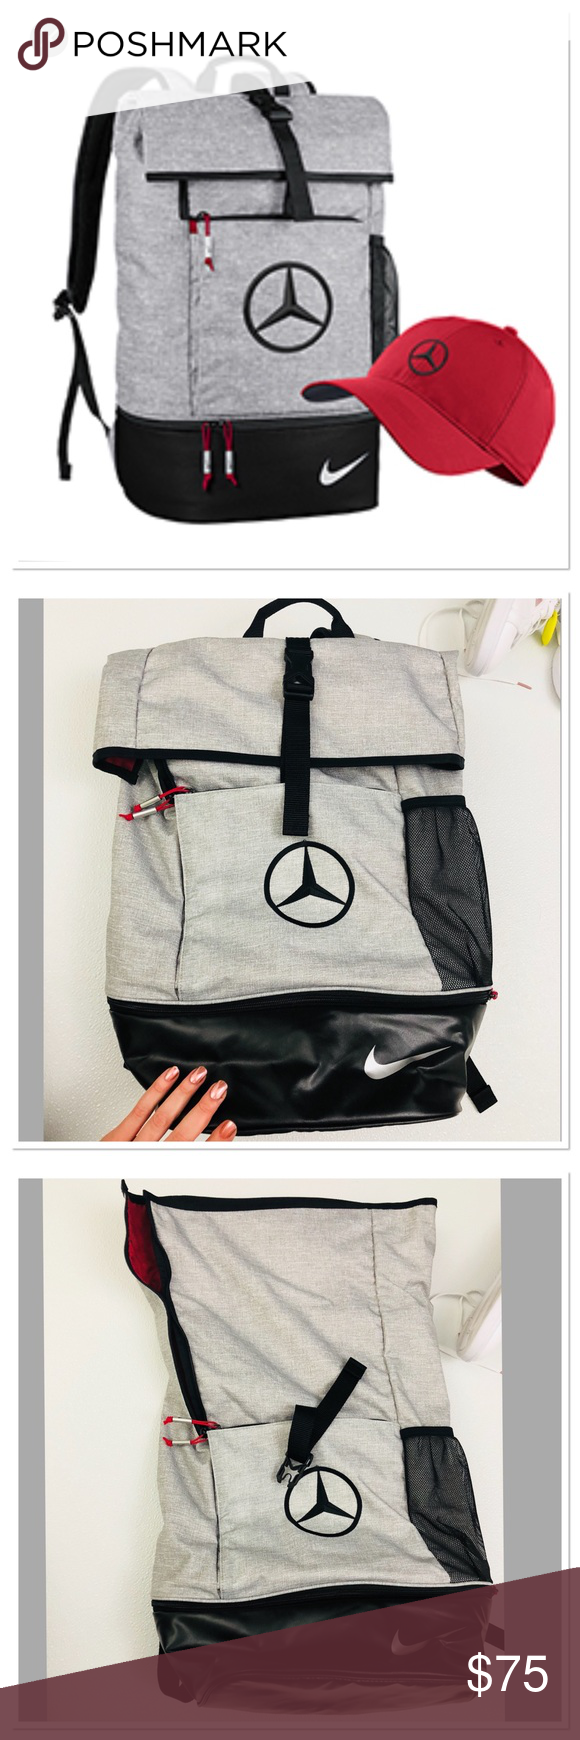 4152e9fb01b Nike Athletic Golf backpack Mercedes Benz logo The Nike Sport Backpack  features a fold-over